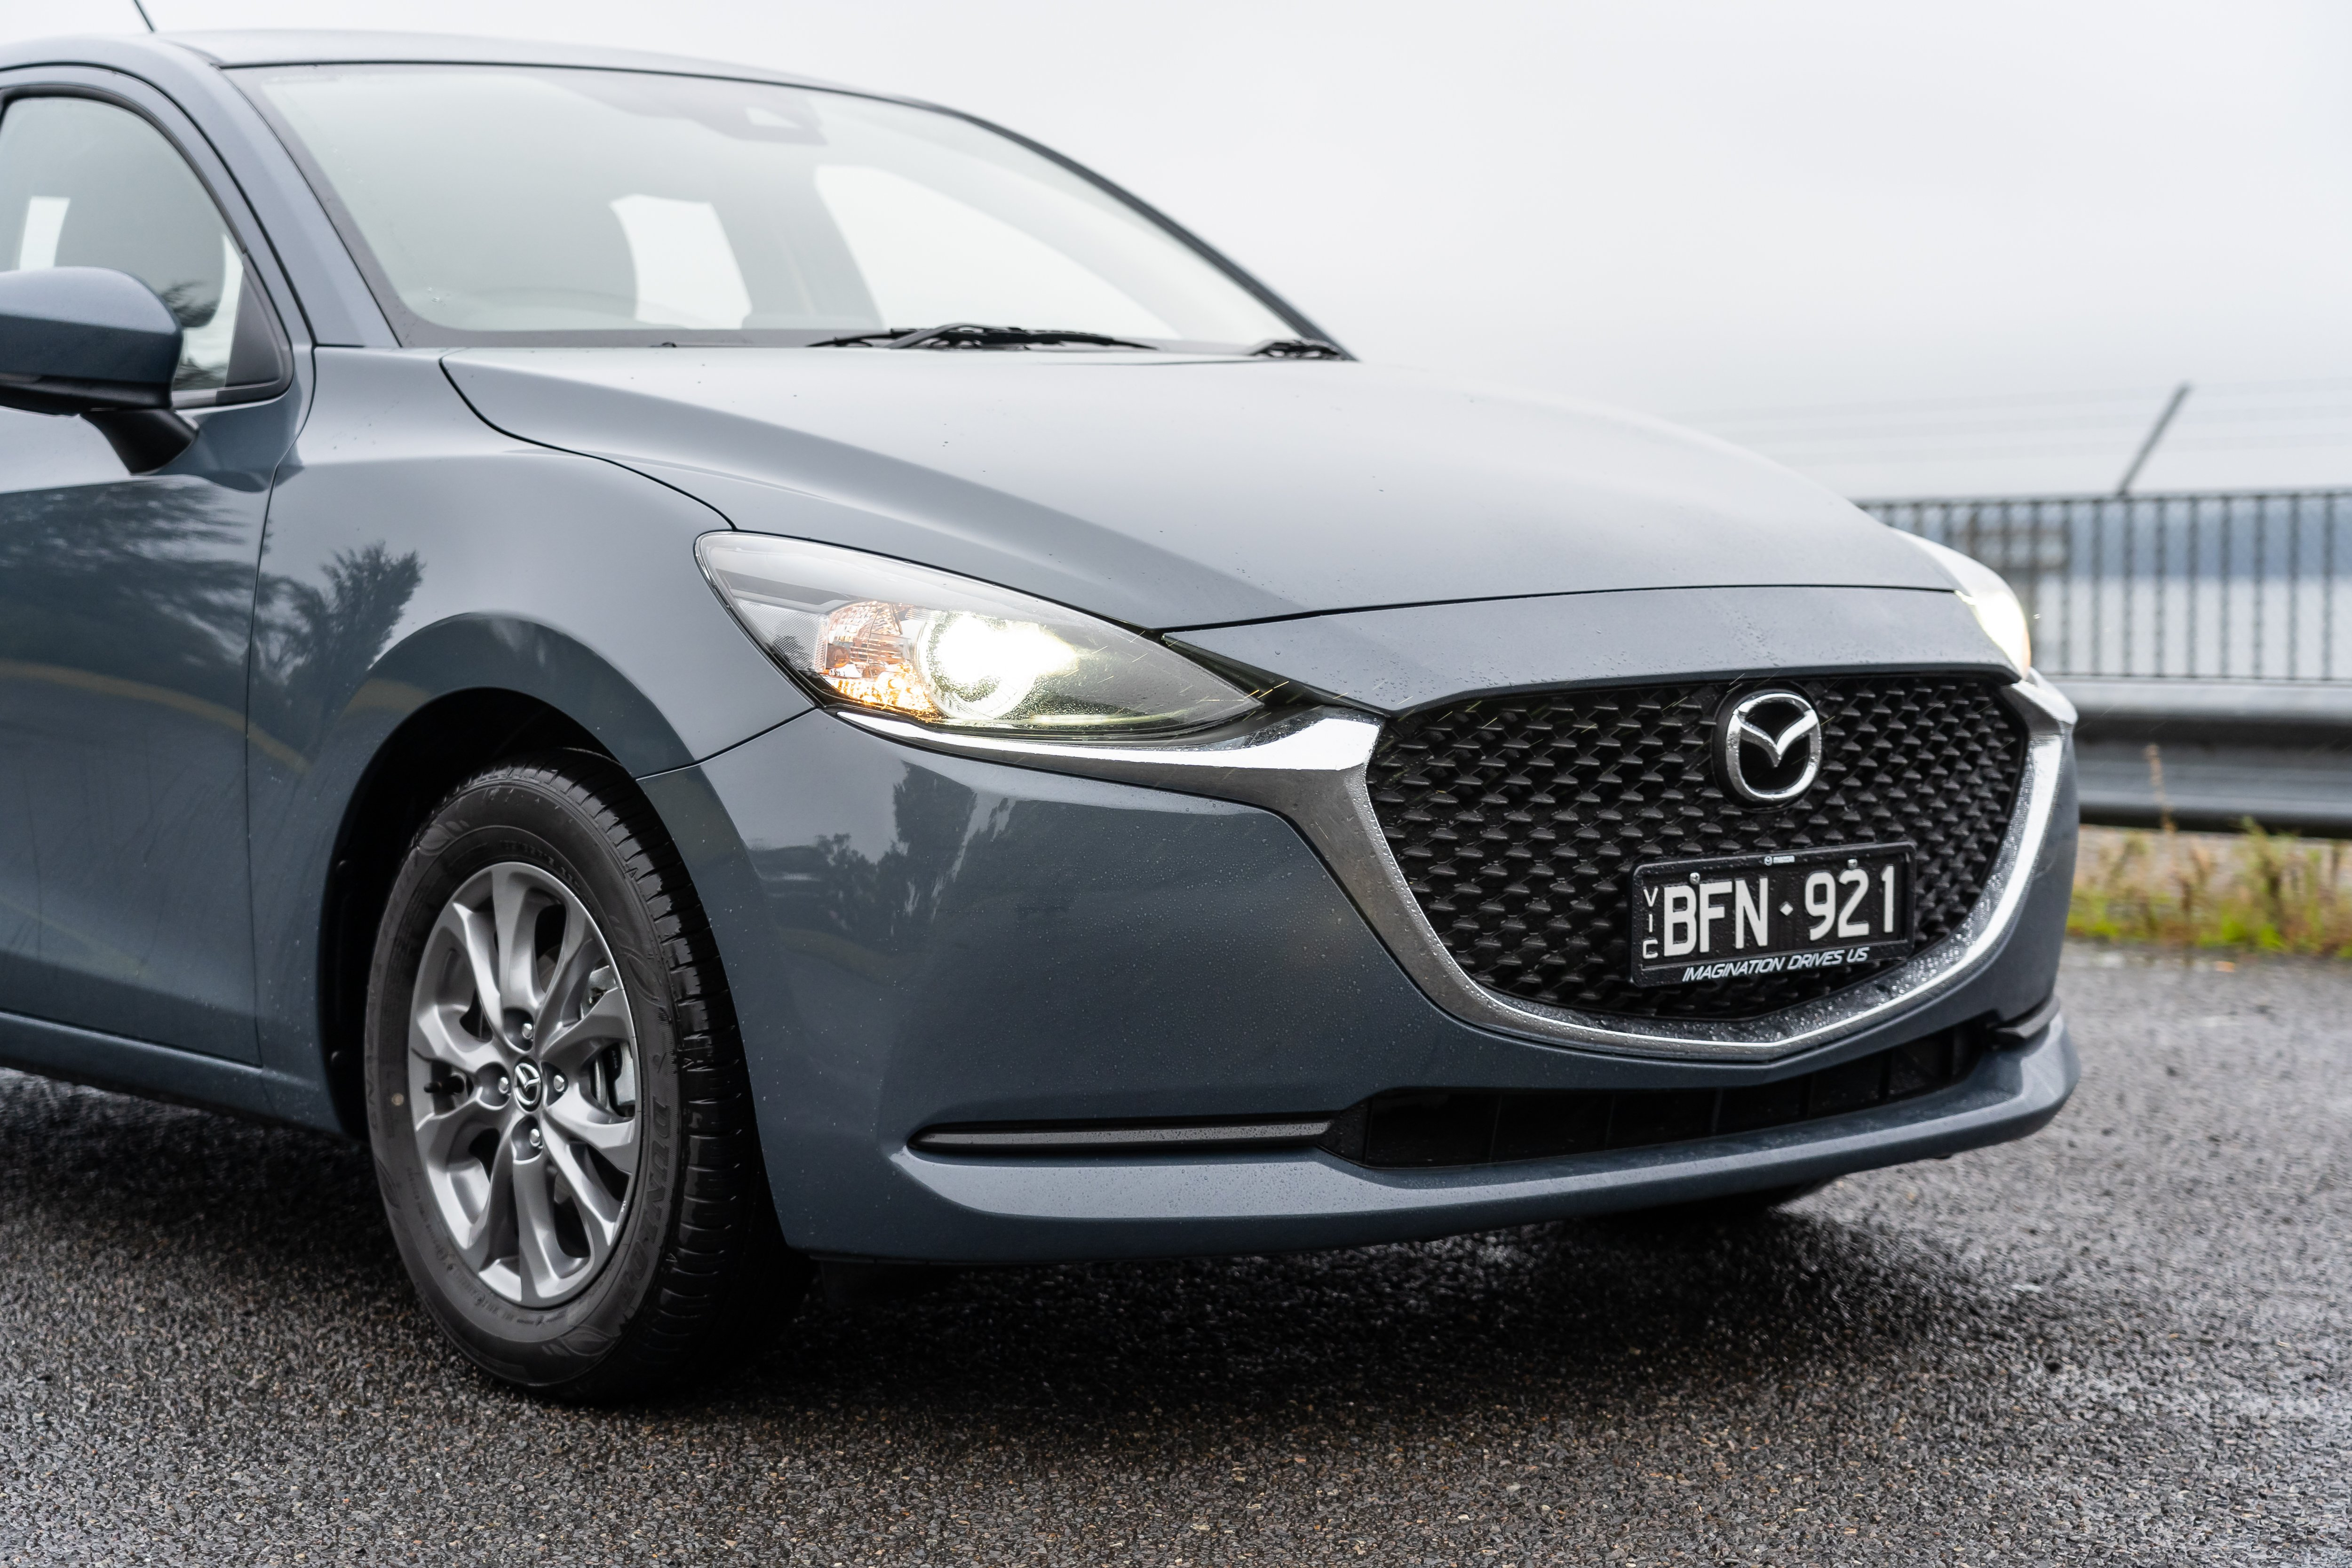 Next-generation Mazda 2 due this year – report